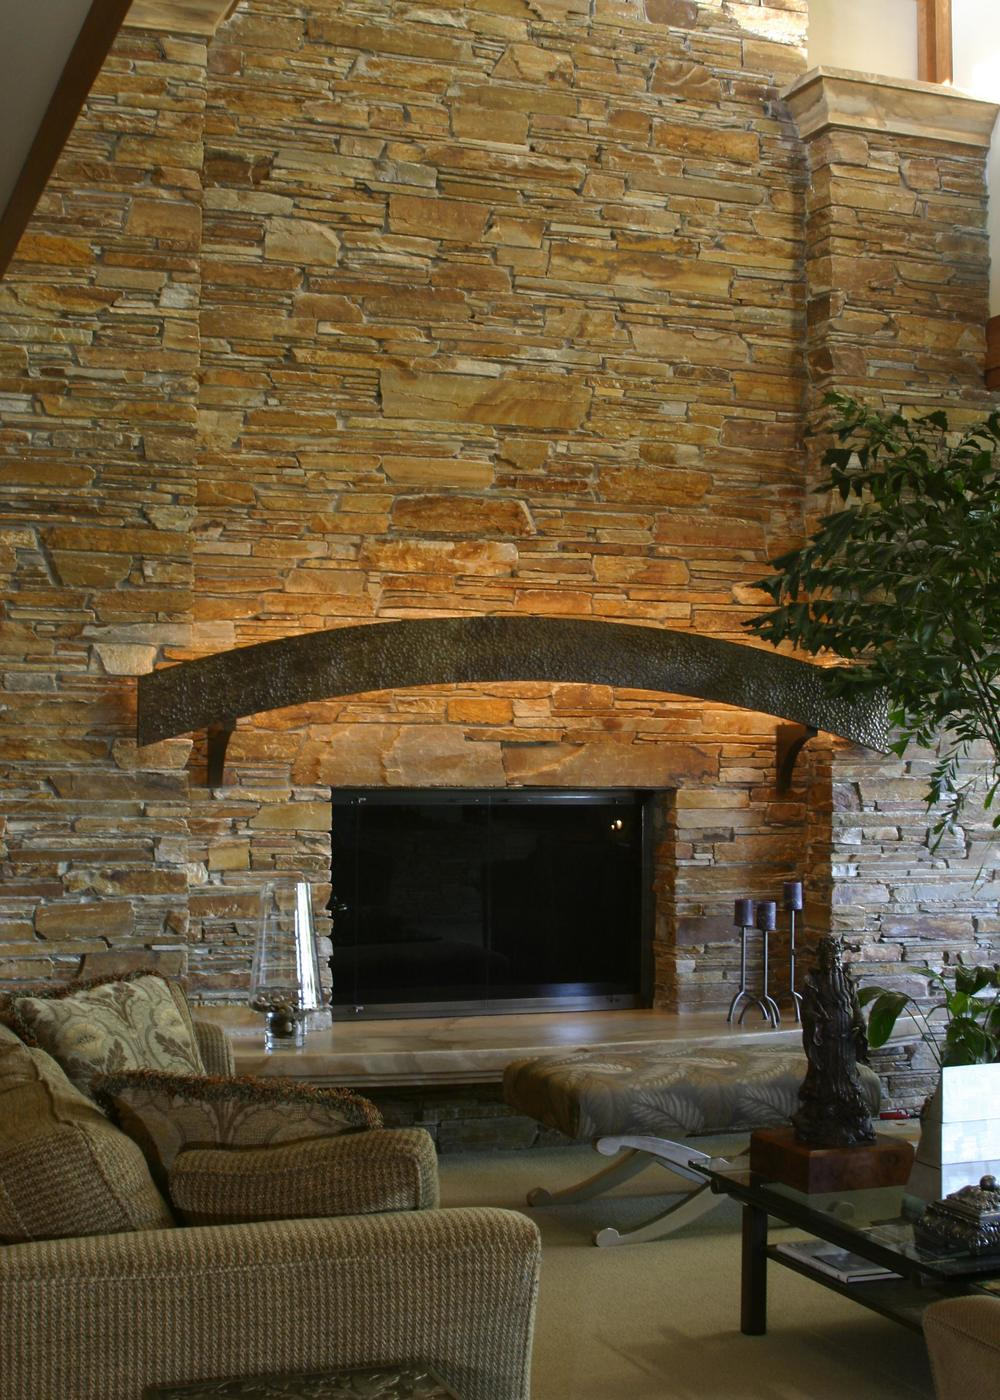 Fireplace and metal mantle.